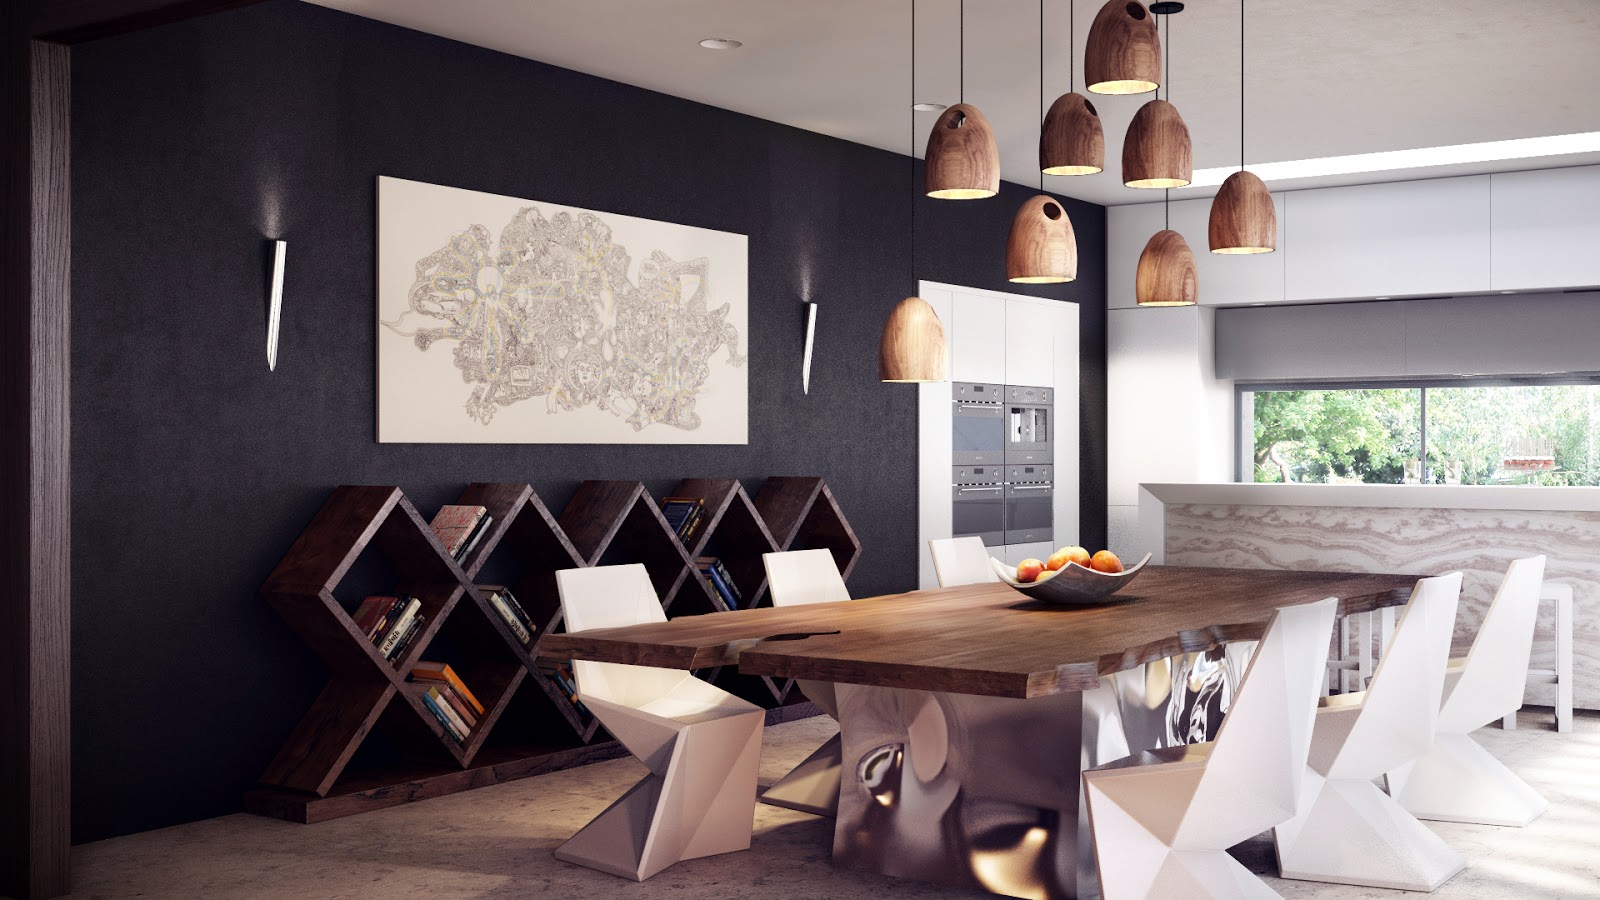 Dining Room with Lamps